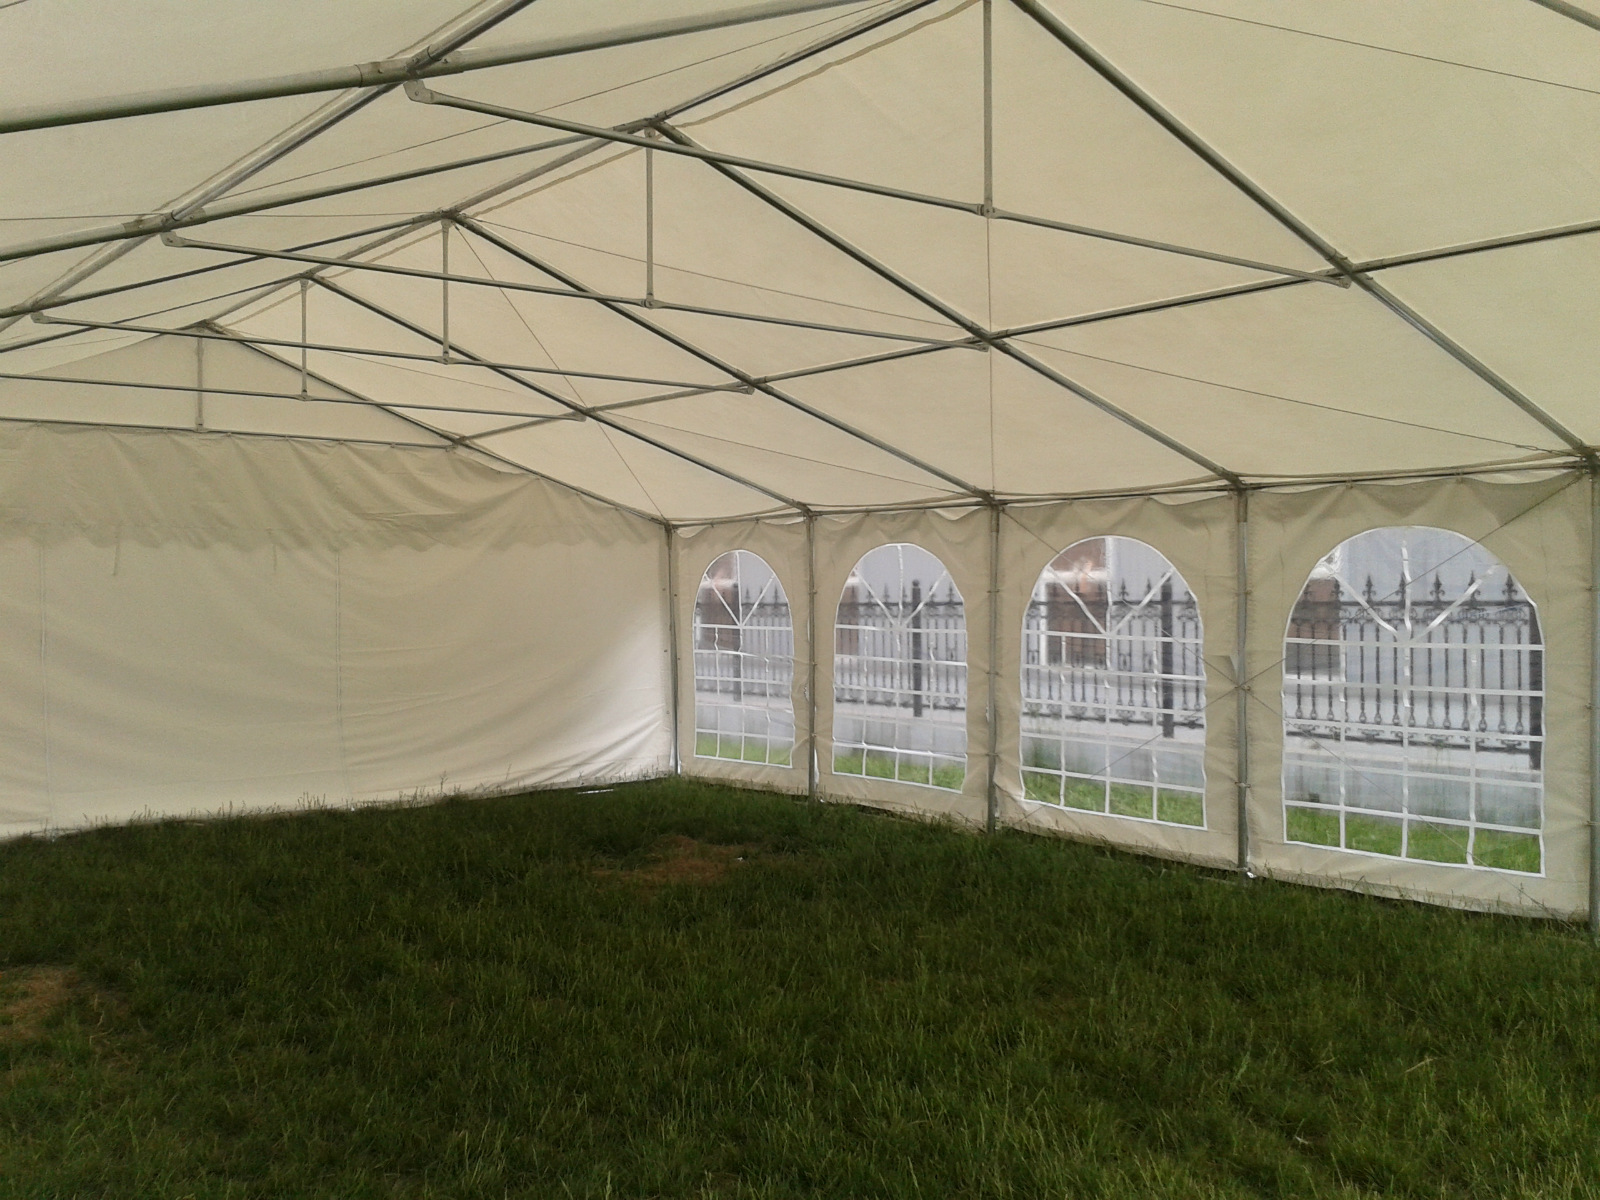 46 x 26 white pvc party tent canopy